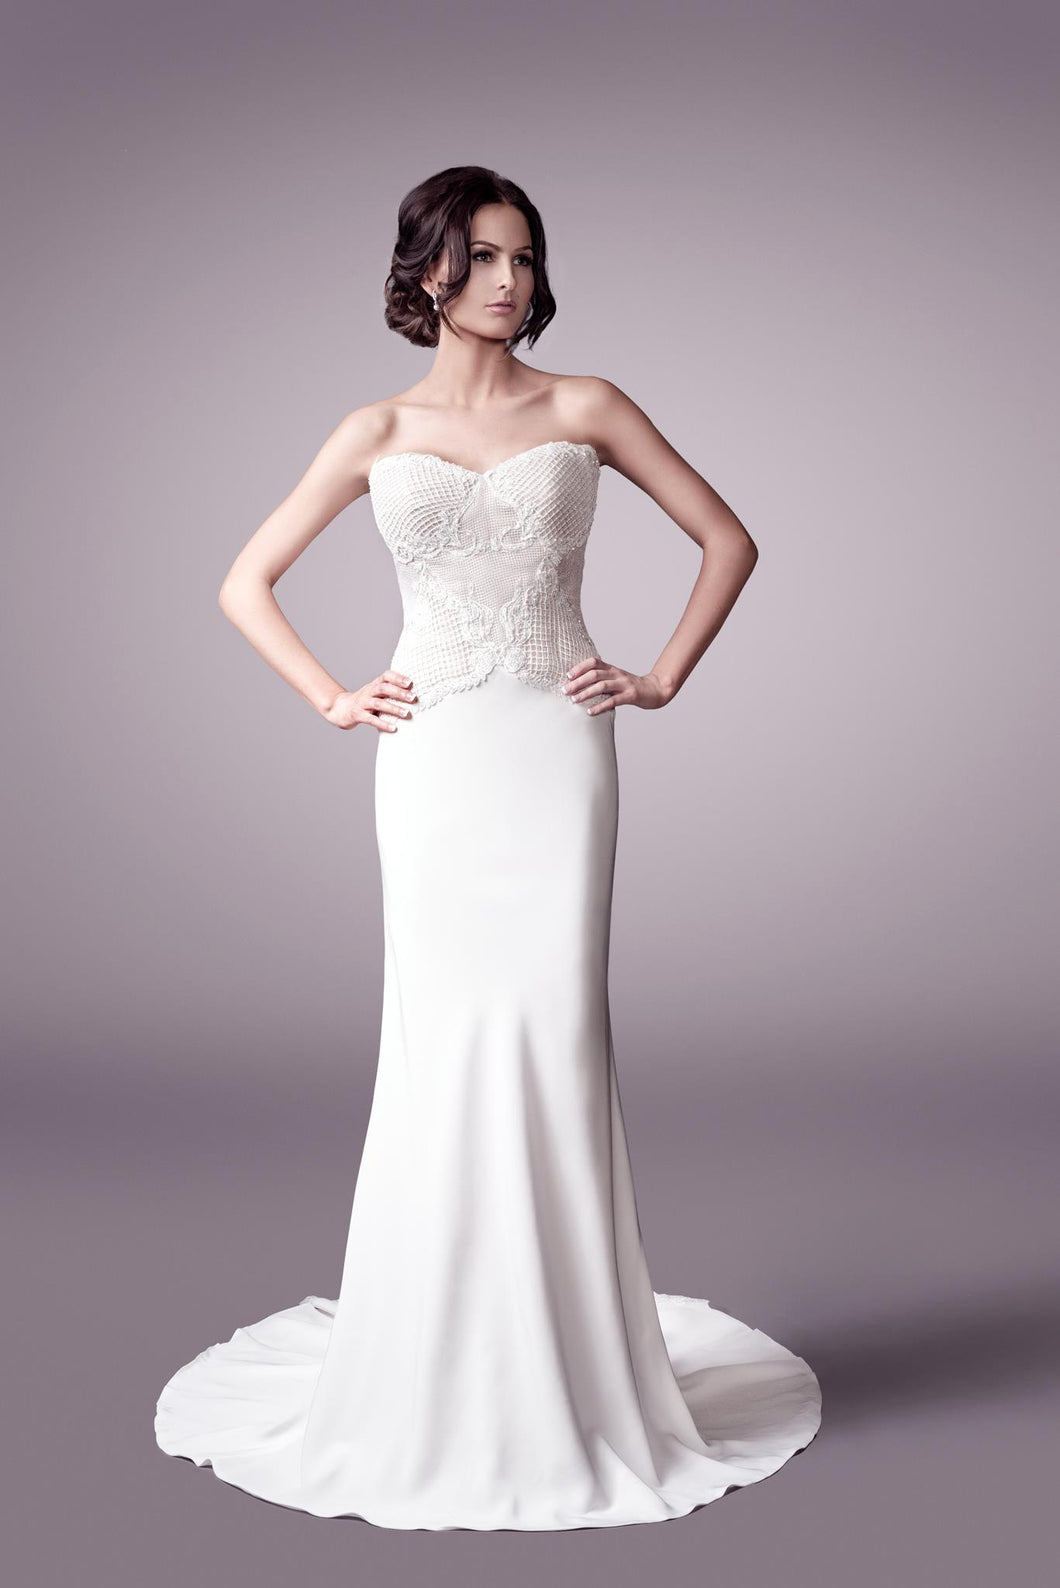 Verity wedding dress bridal gown Perth 9320 F